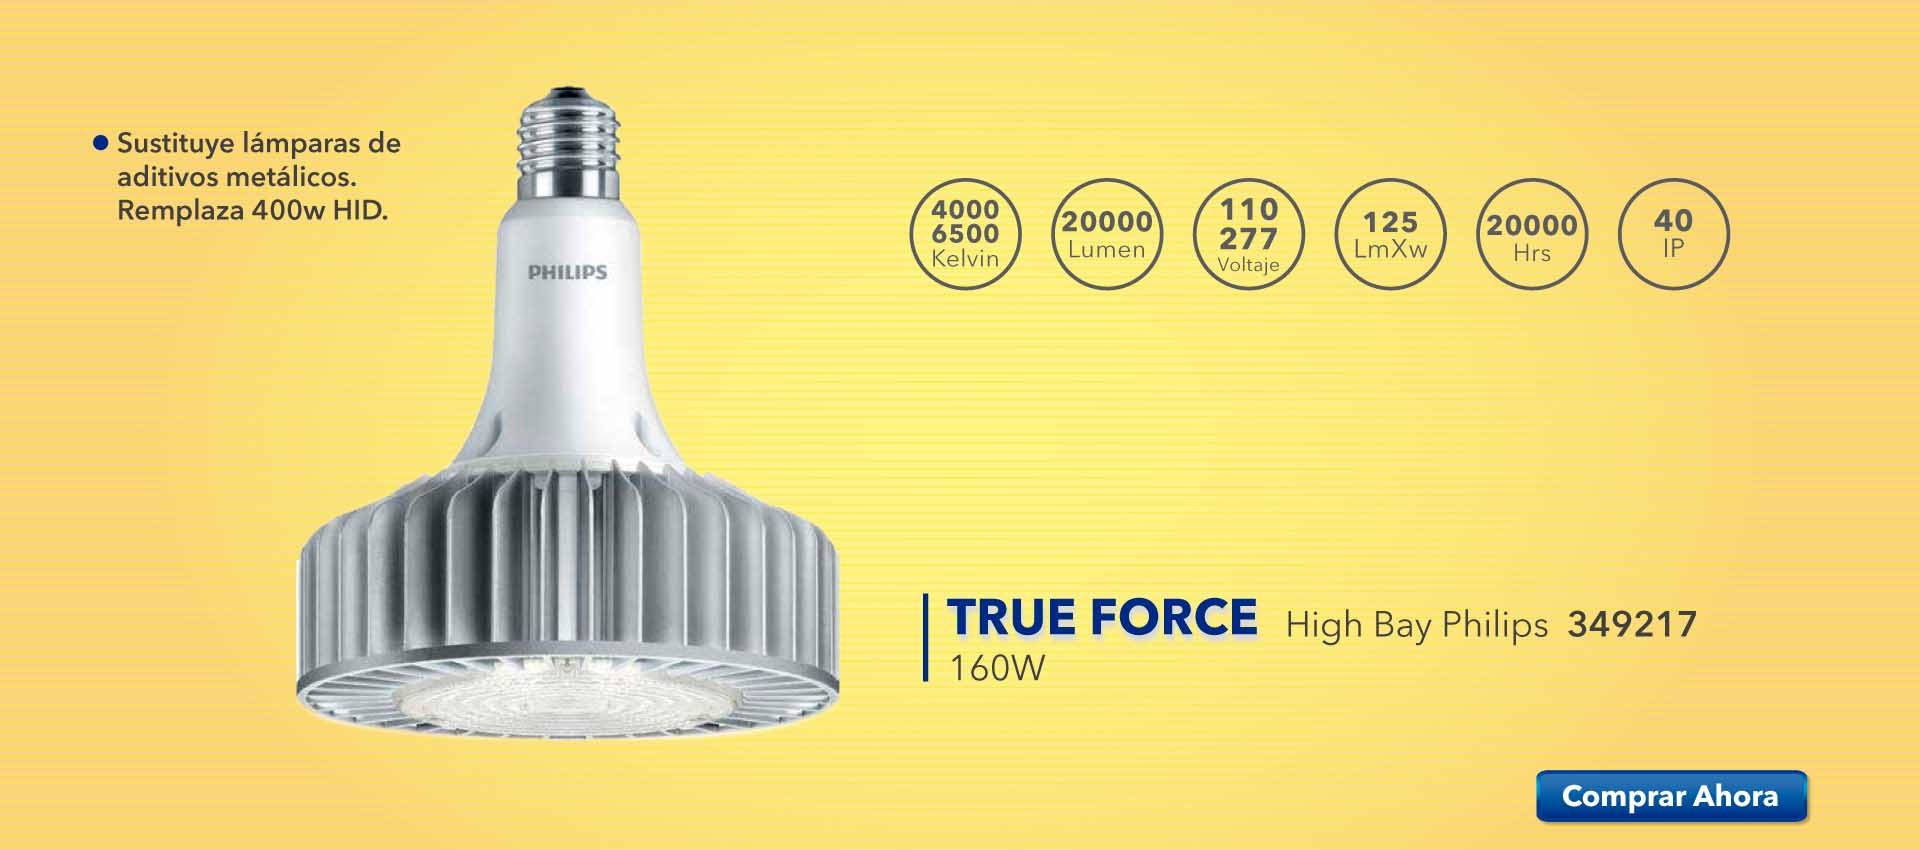 True Force 160w Philips